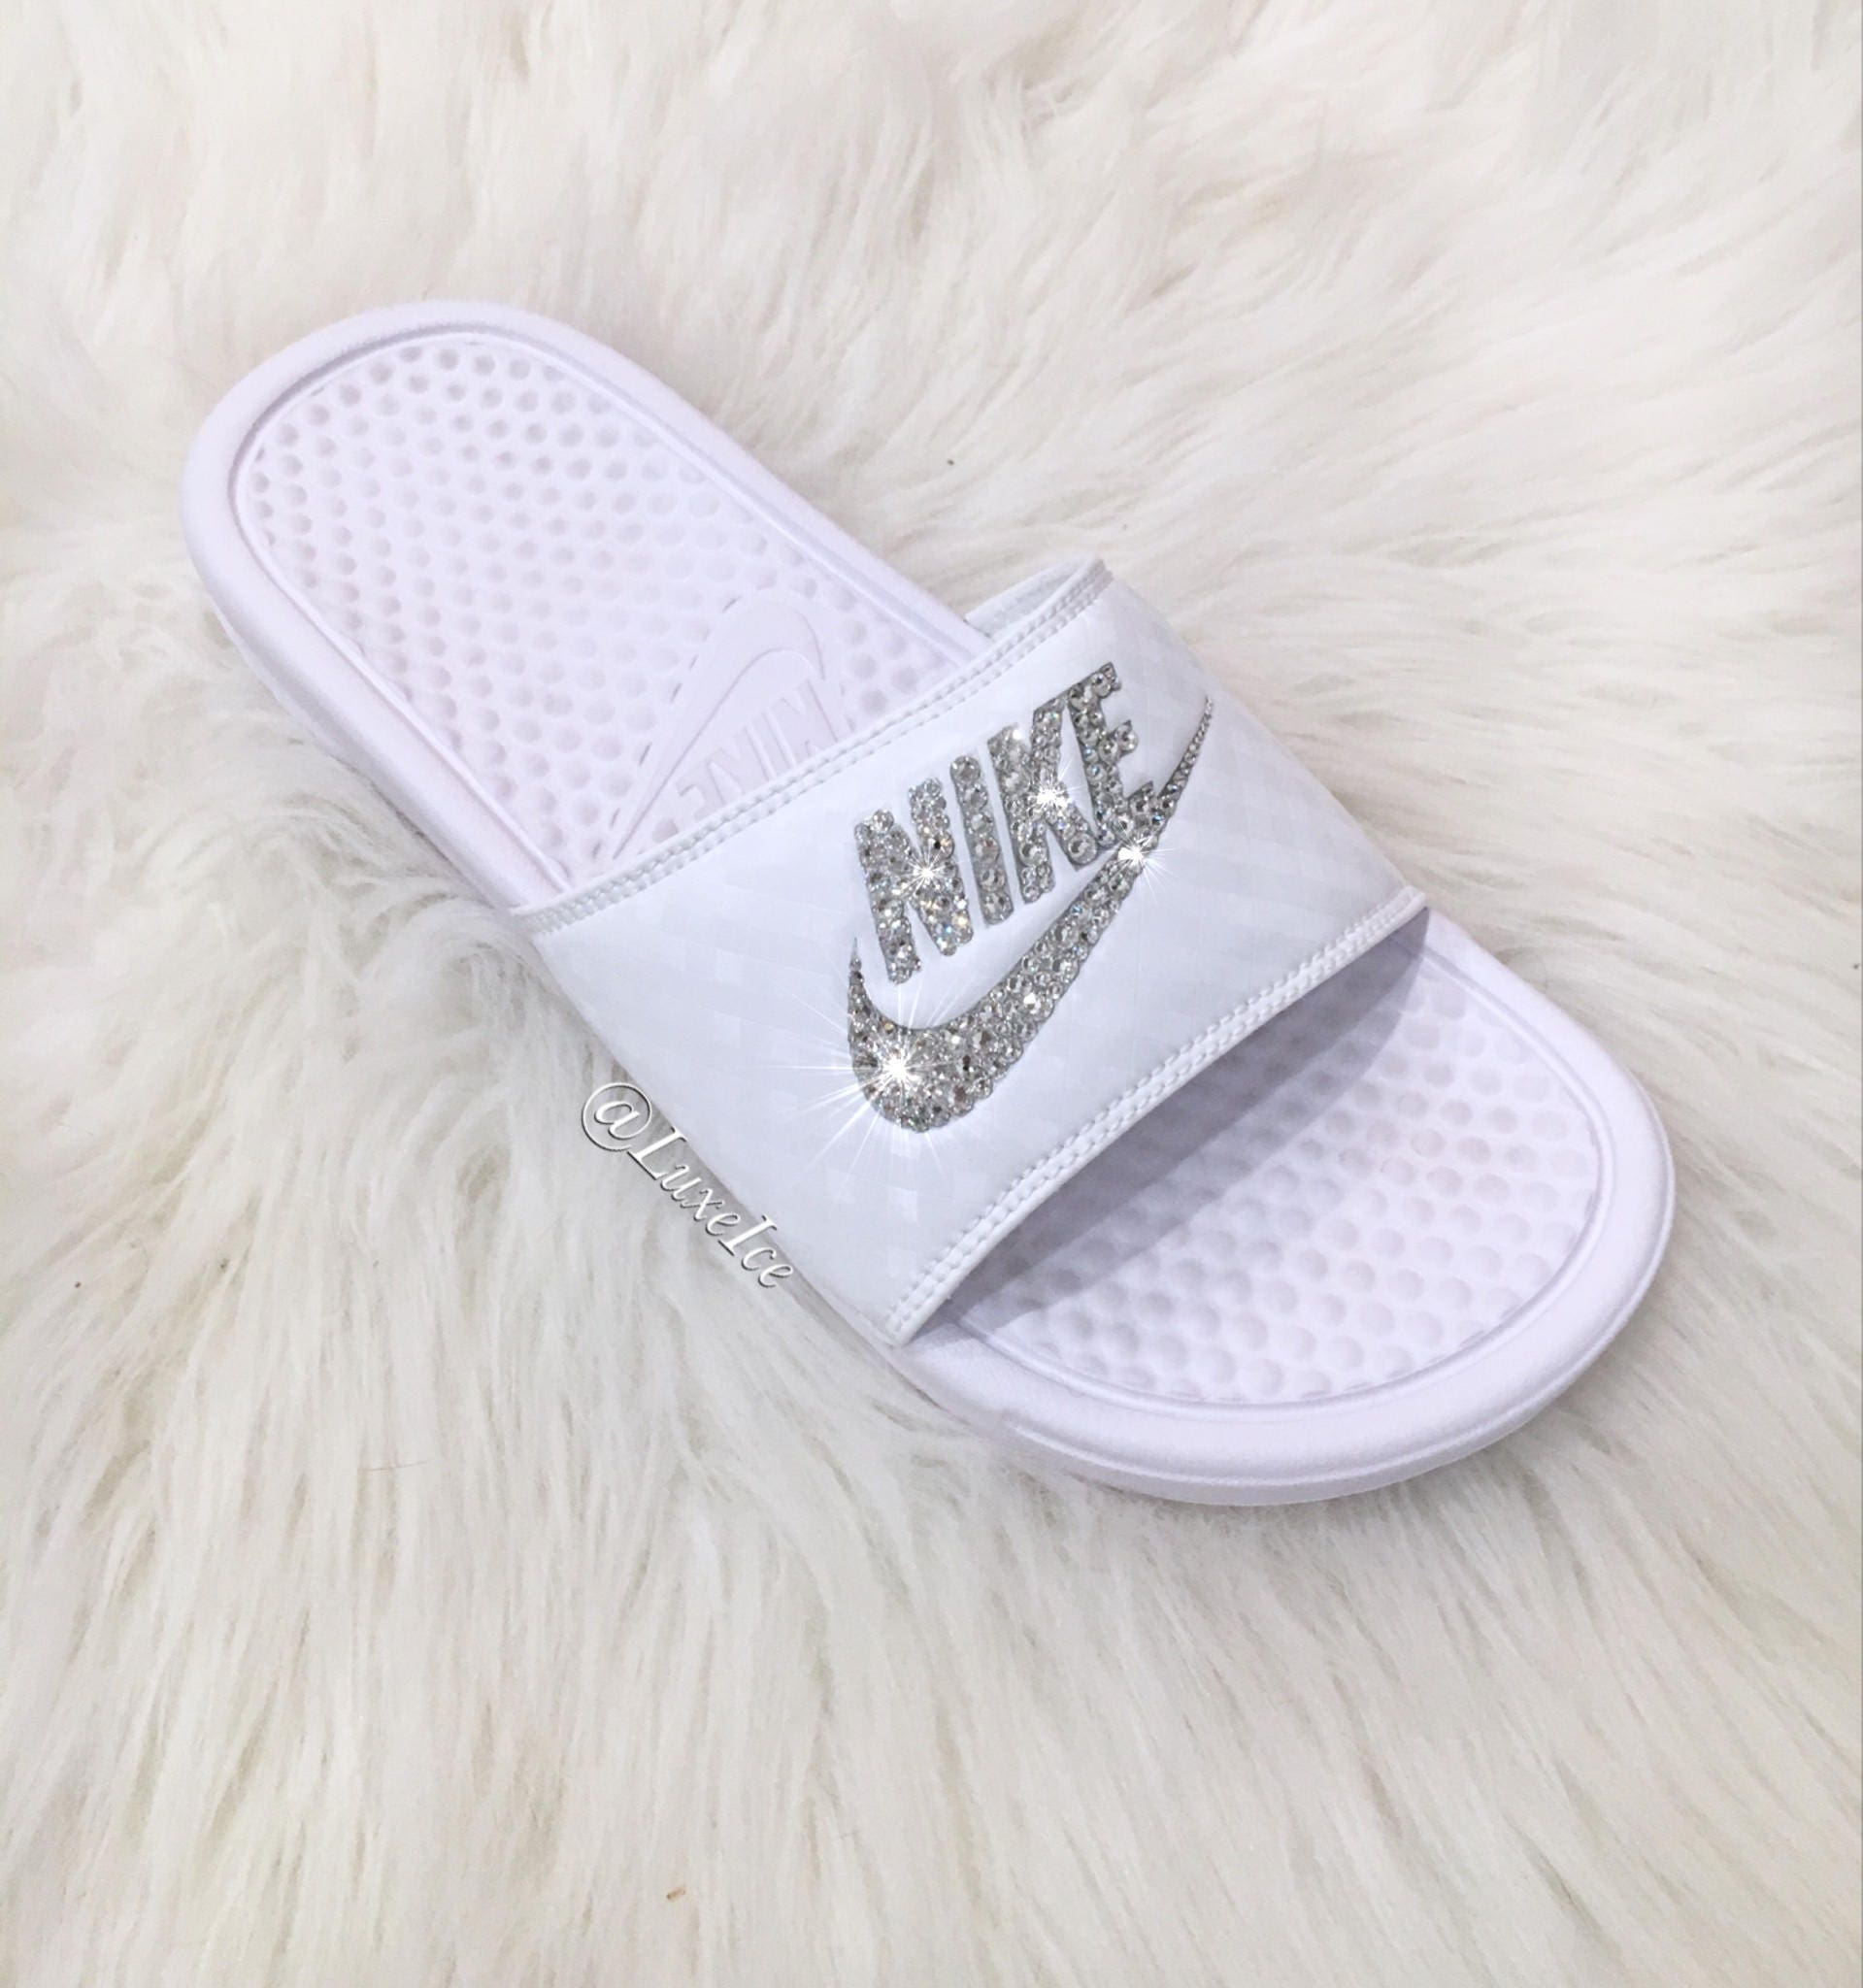 84610195dfe6 Swarovski Nike Benassi JDI Slides Sandals customized with